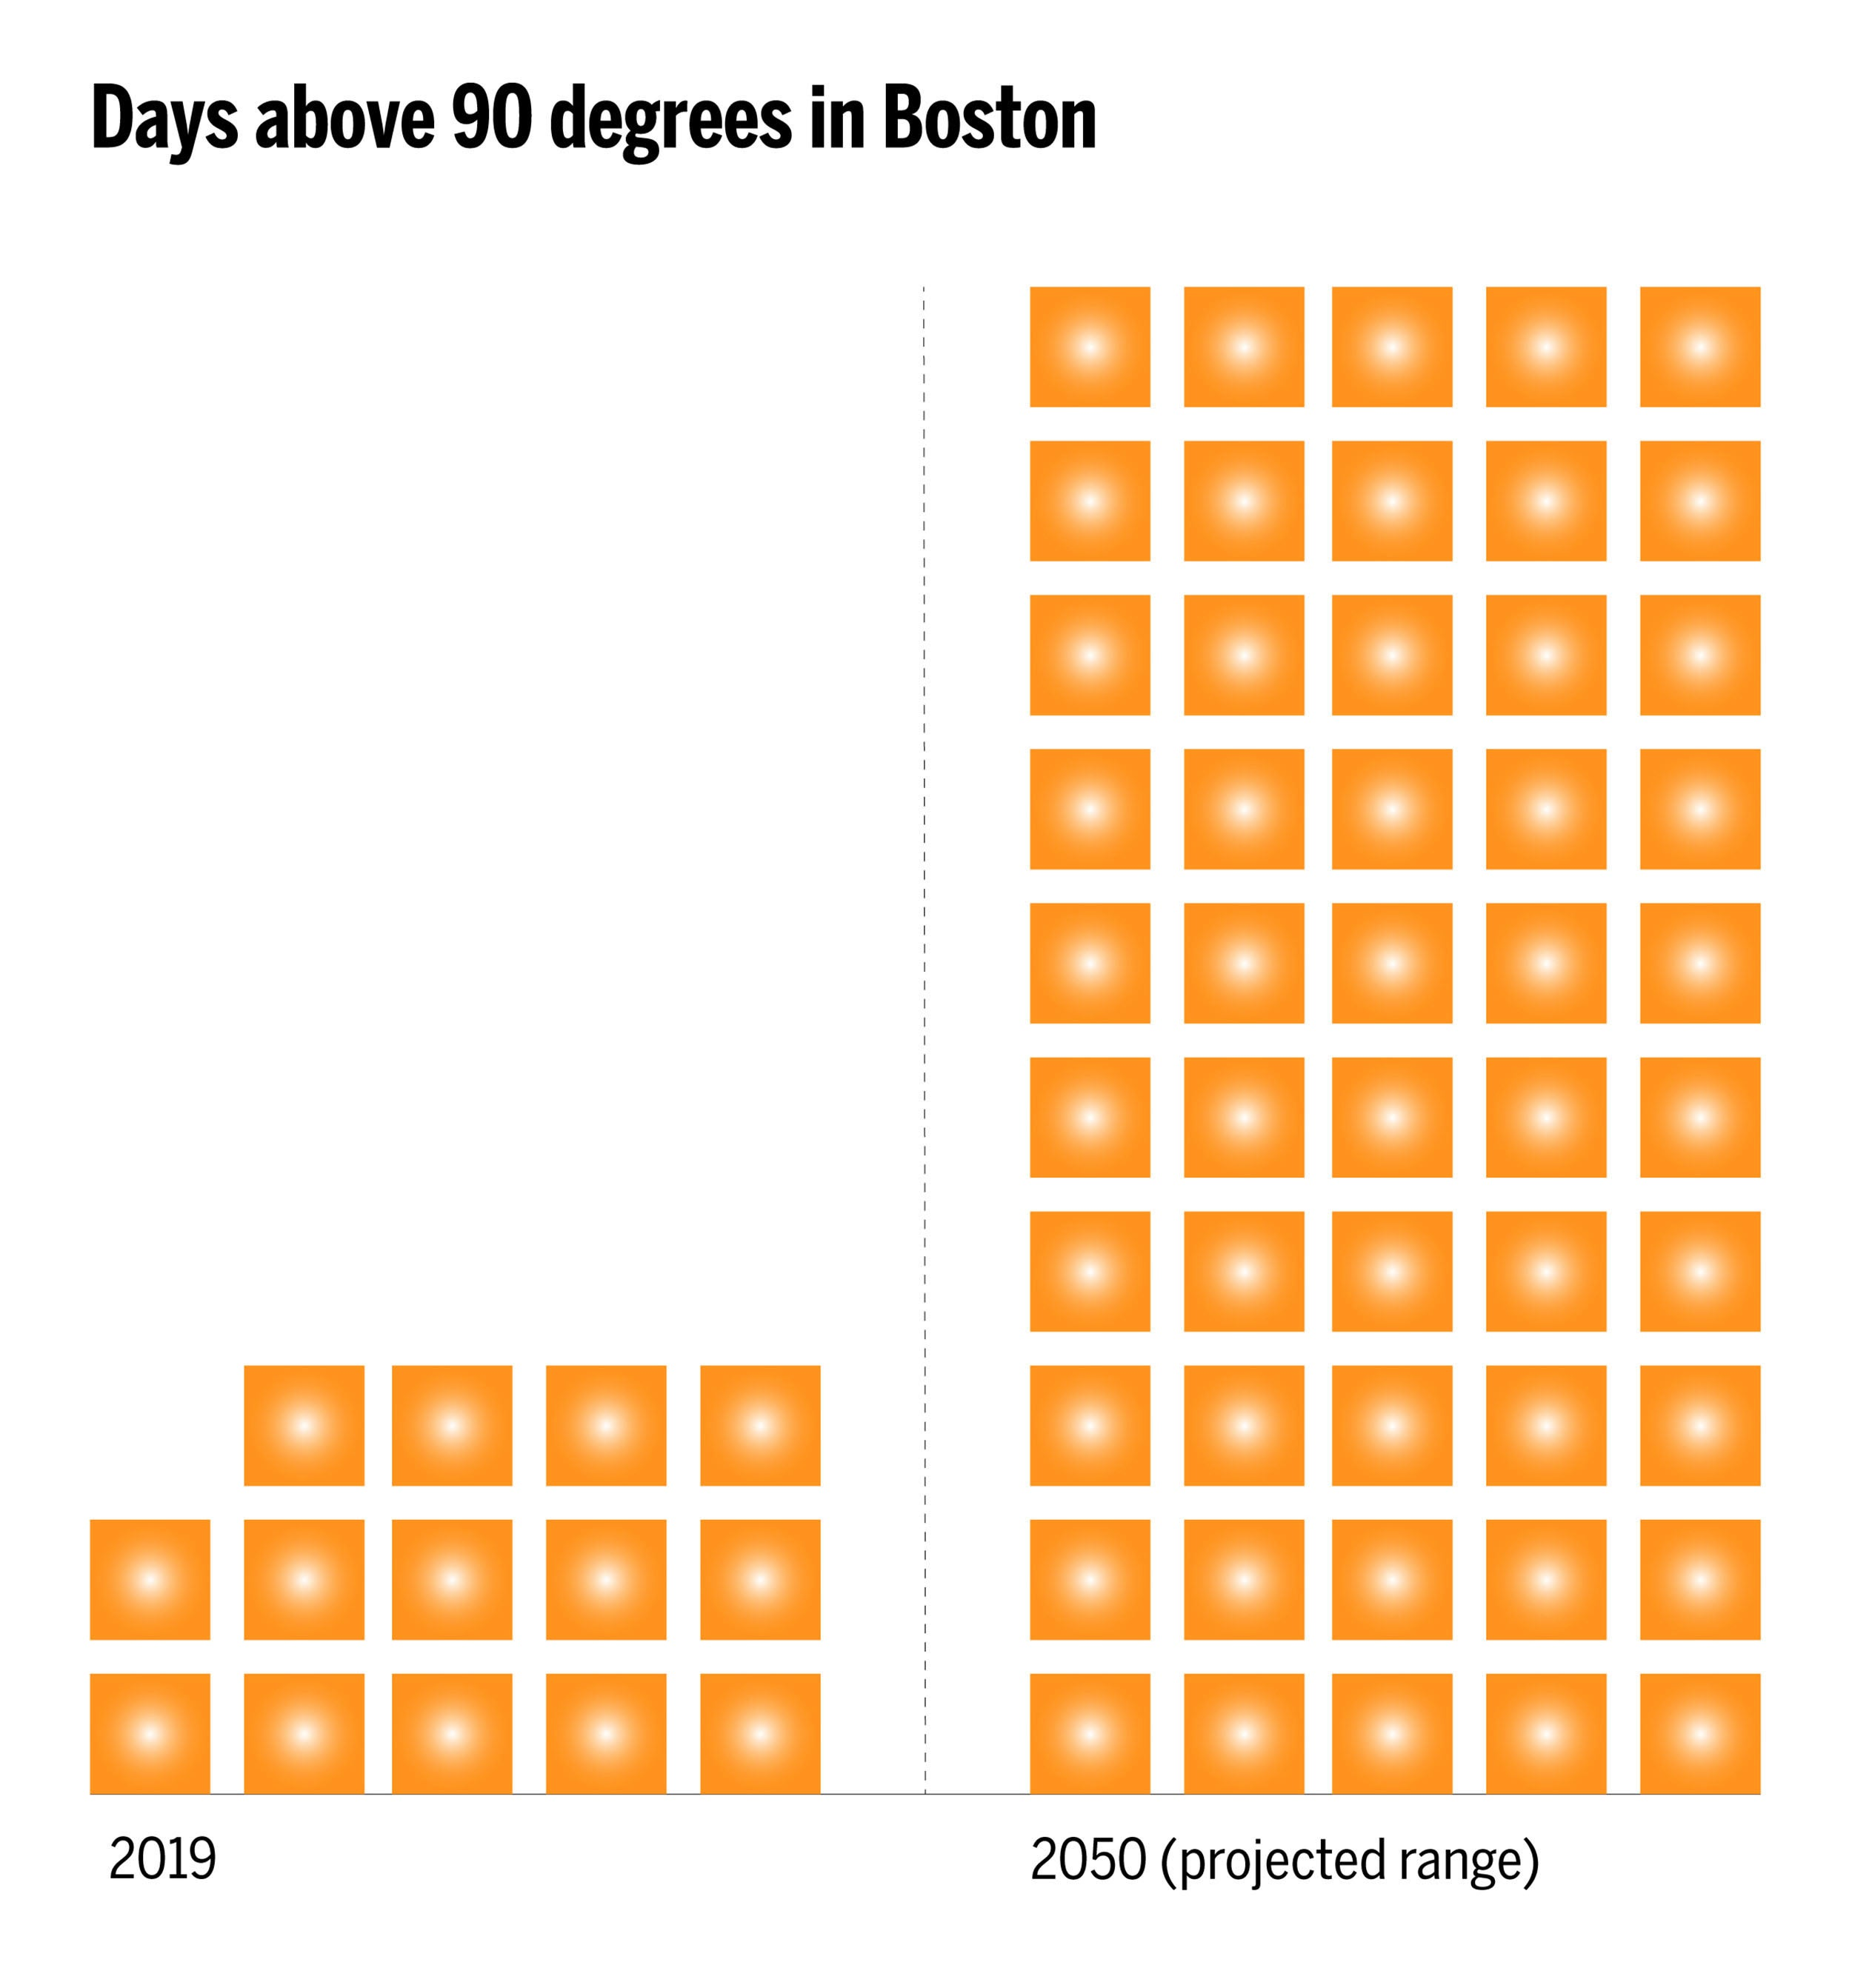 Graphic showing days above 90 in 2019 and 2050